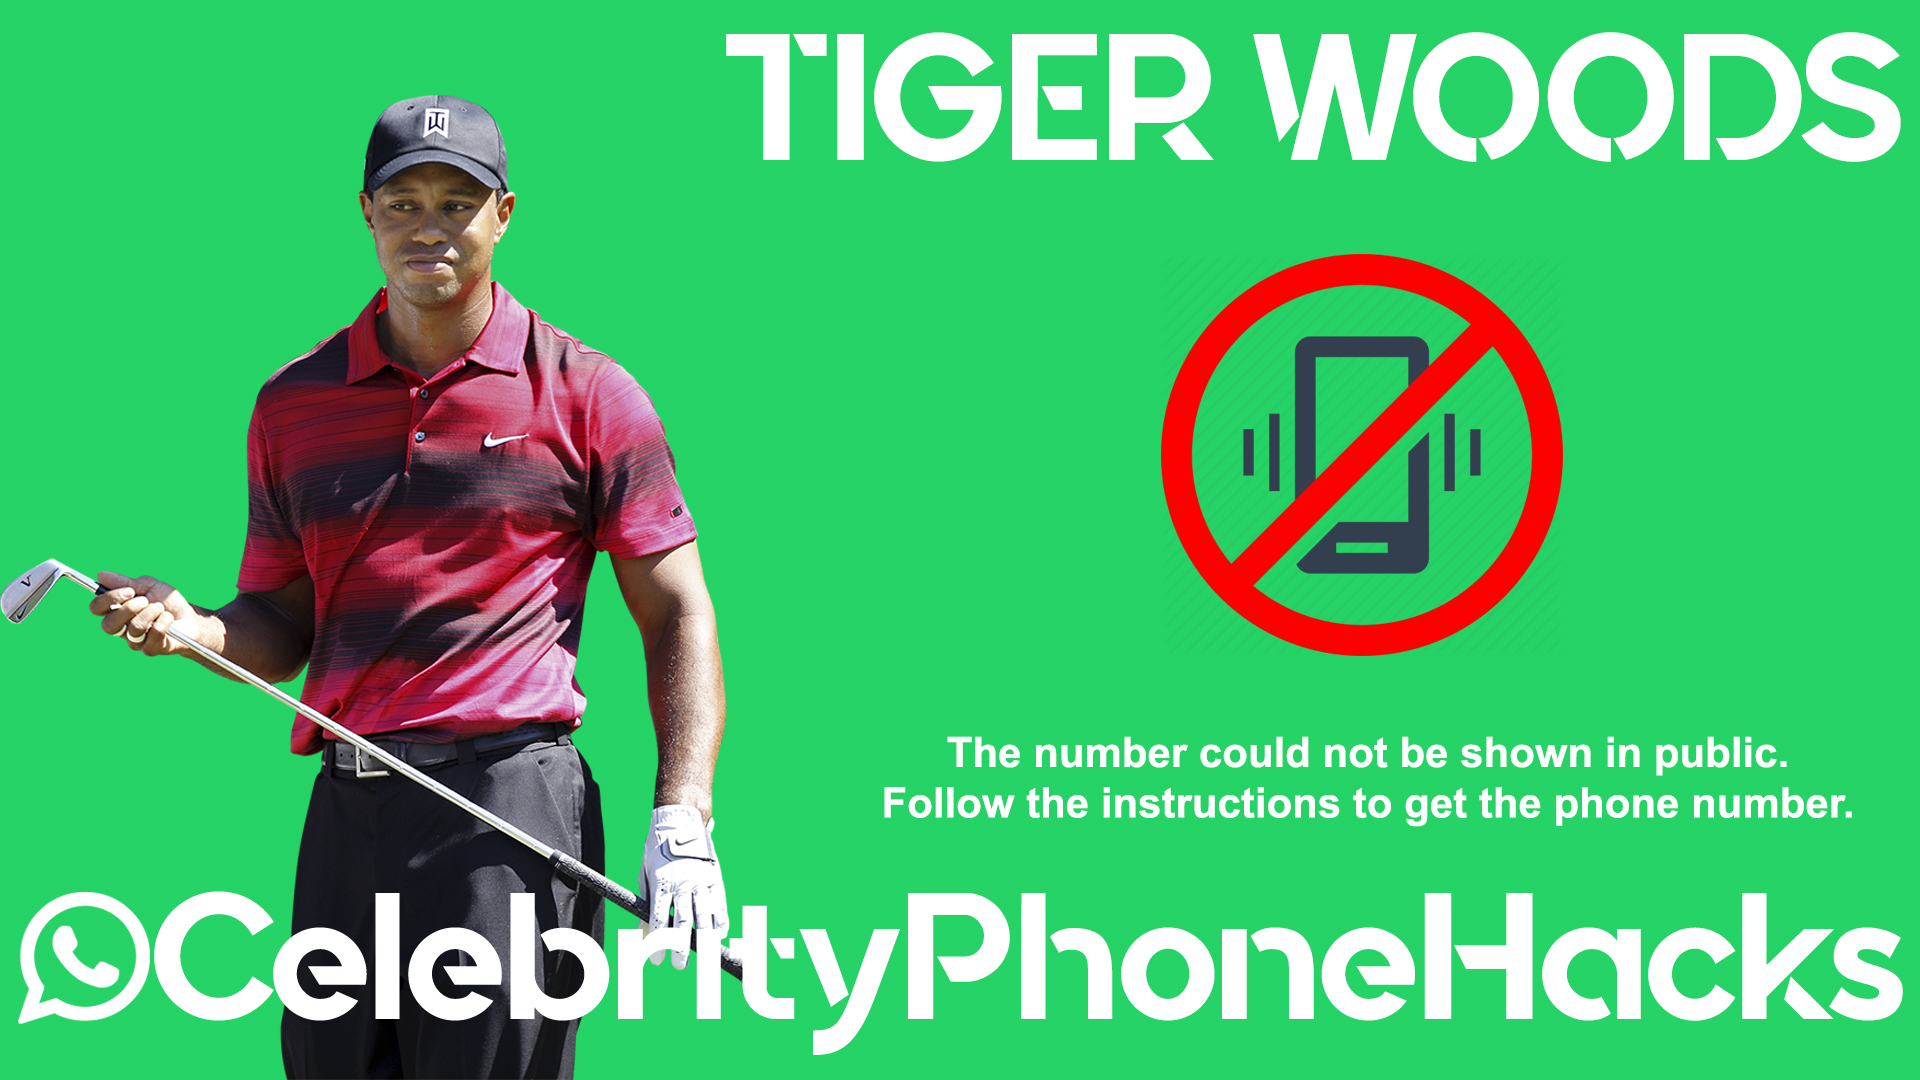 Tiger Woods real phone number 2019 whatsapp hacked leaked